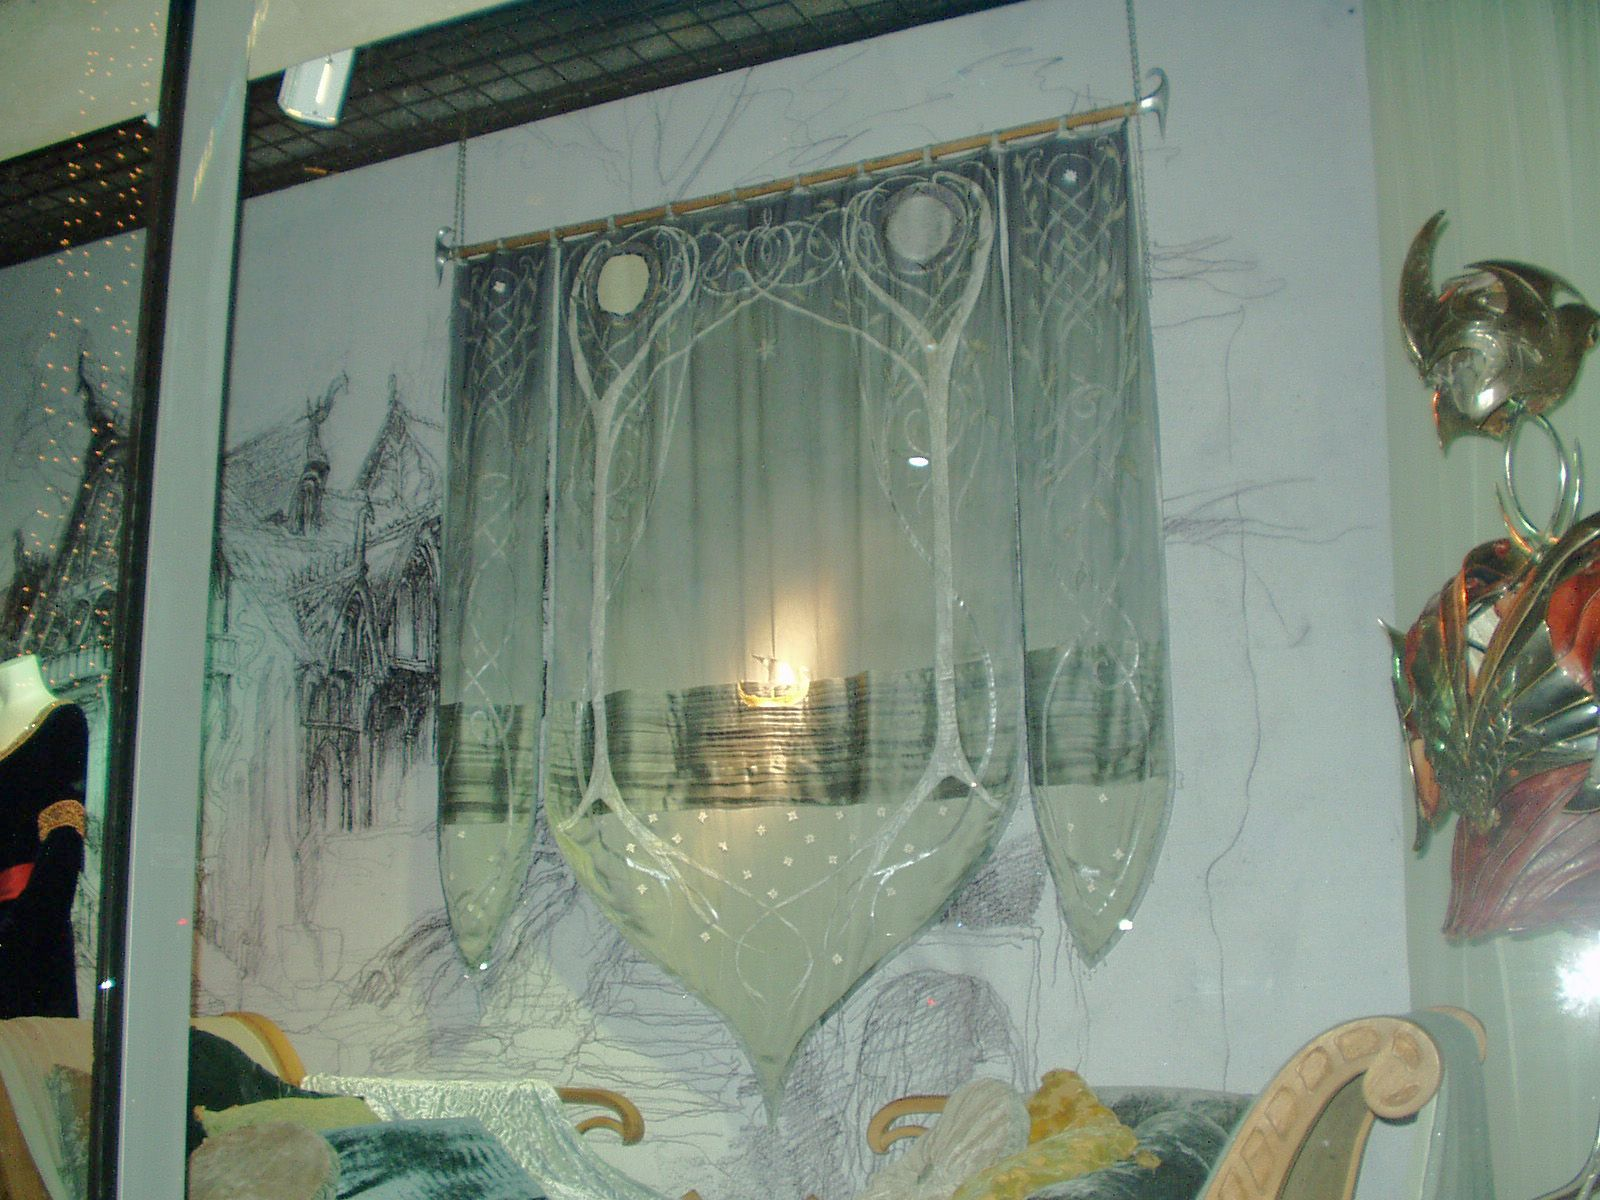 One Of My Favorite Props From Lotr Arwen S Bedroom